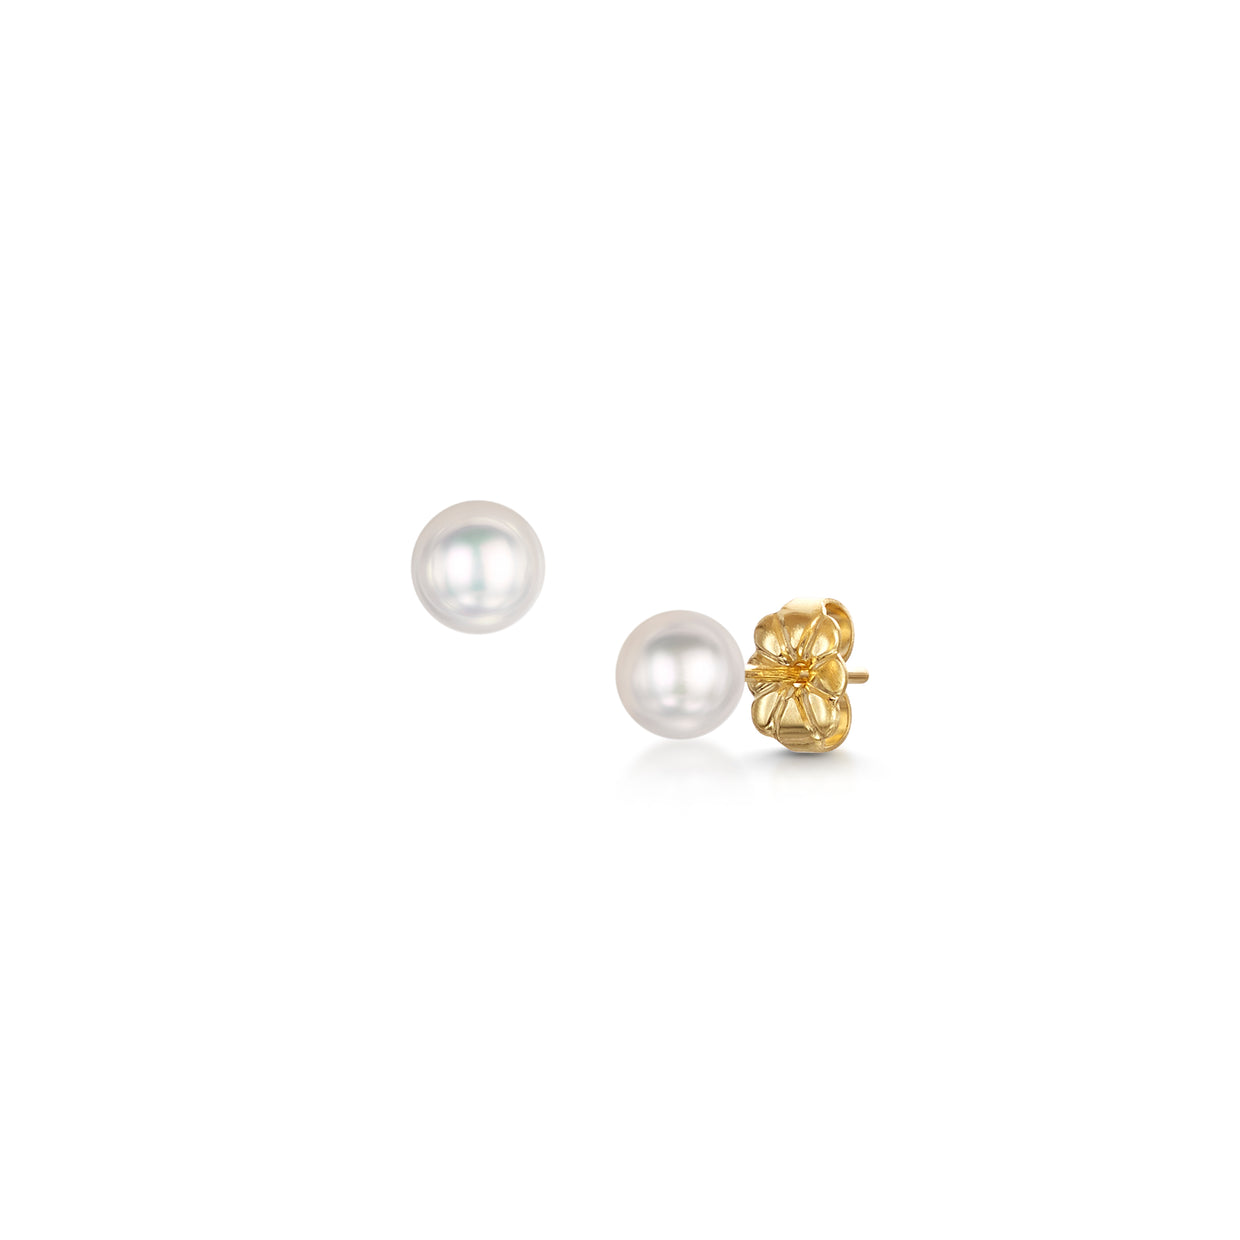 5x5.5mm Single Cultured Pearl Stud Earring - Hamilton & Inches